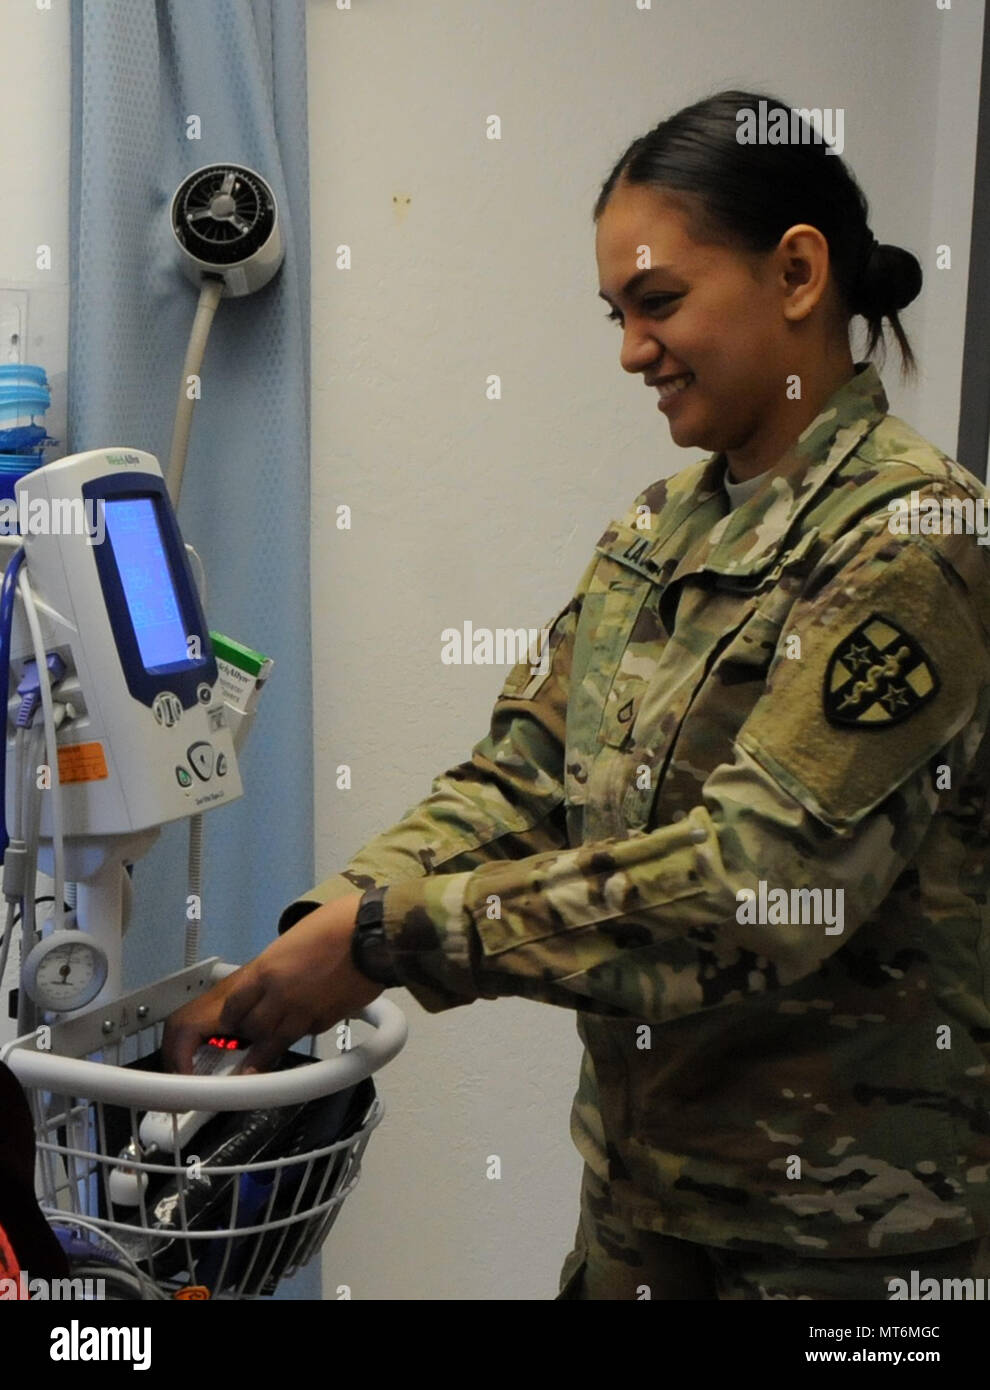 private 1st class nina lapa a combat medic assigned to army reserve